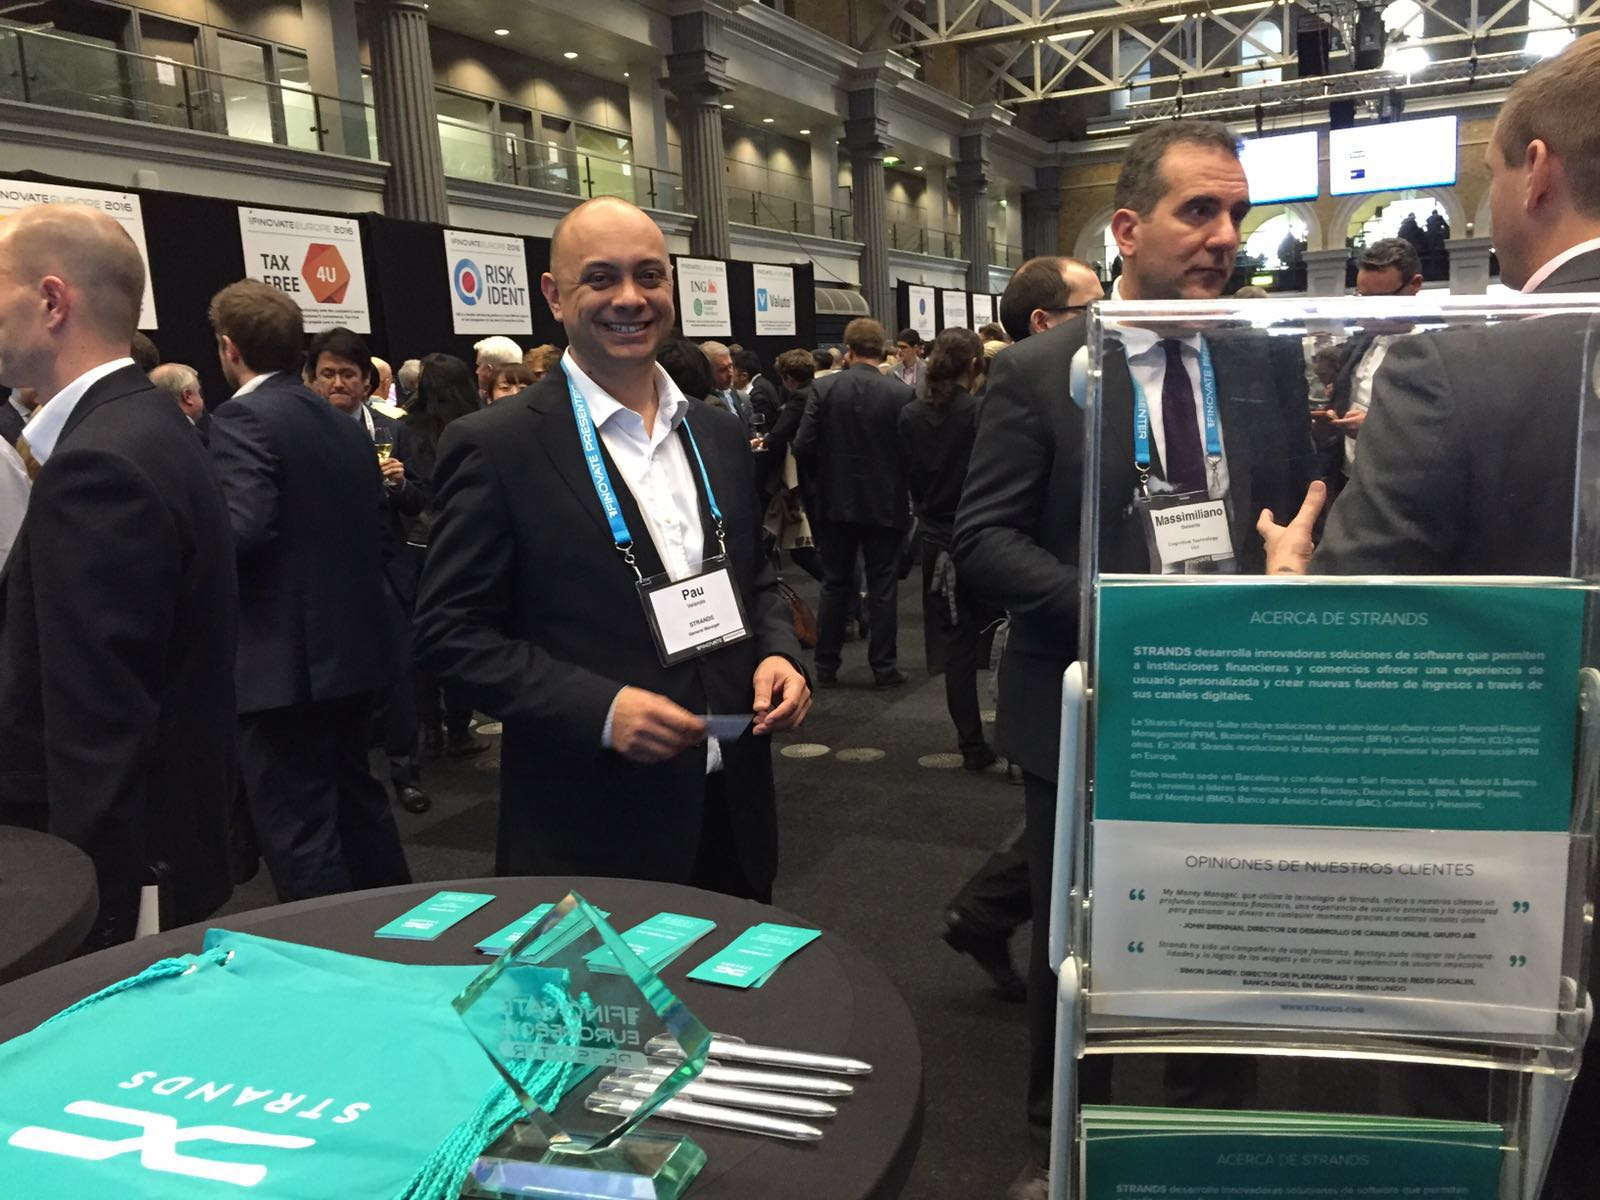 finovate_europe_2016_-_pau_stand.jpg